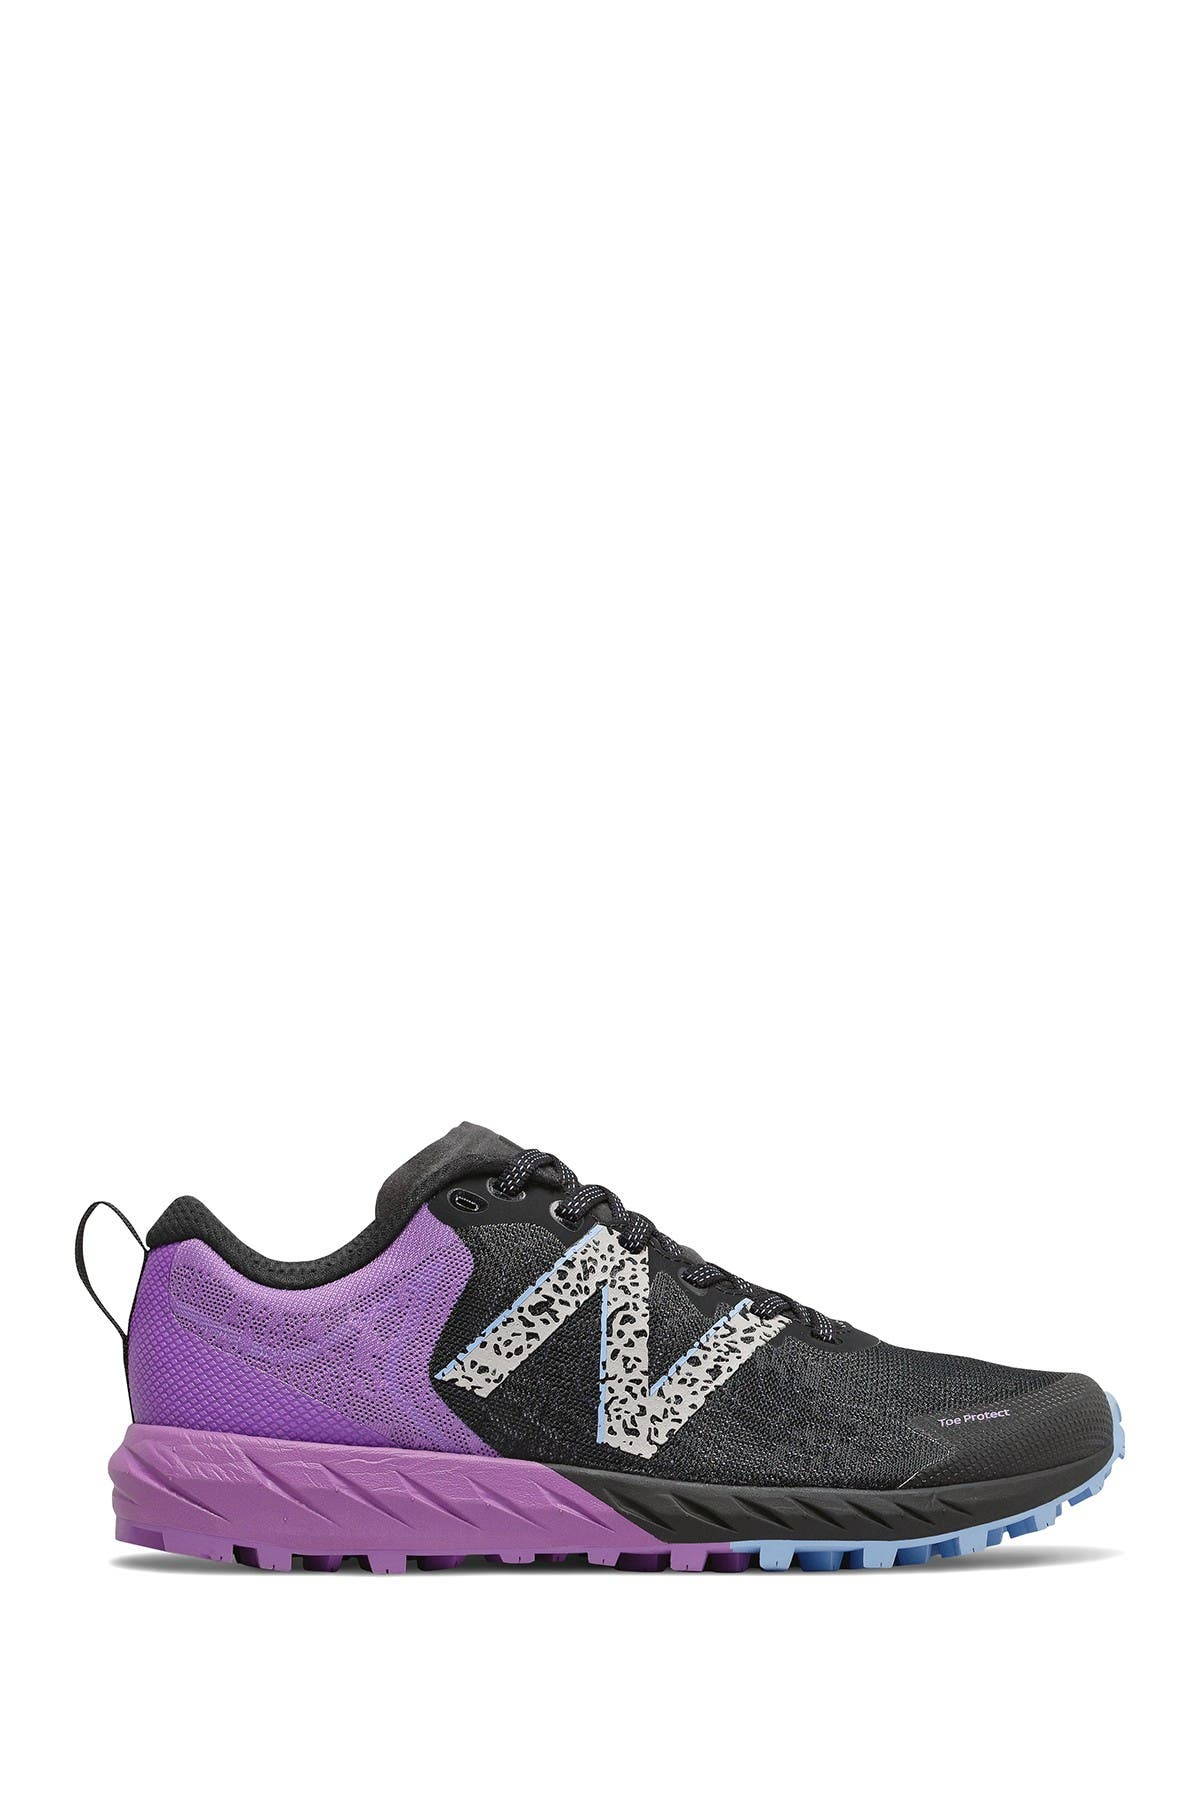 Image of New Balance Summit Unknown v2 Trail Running Sneaker